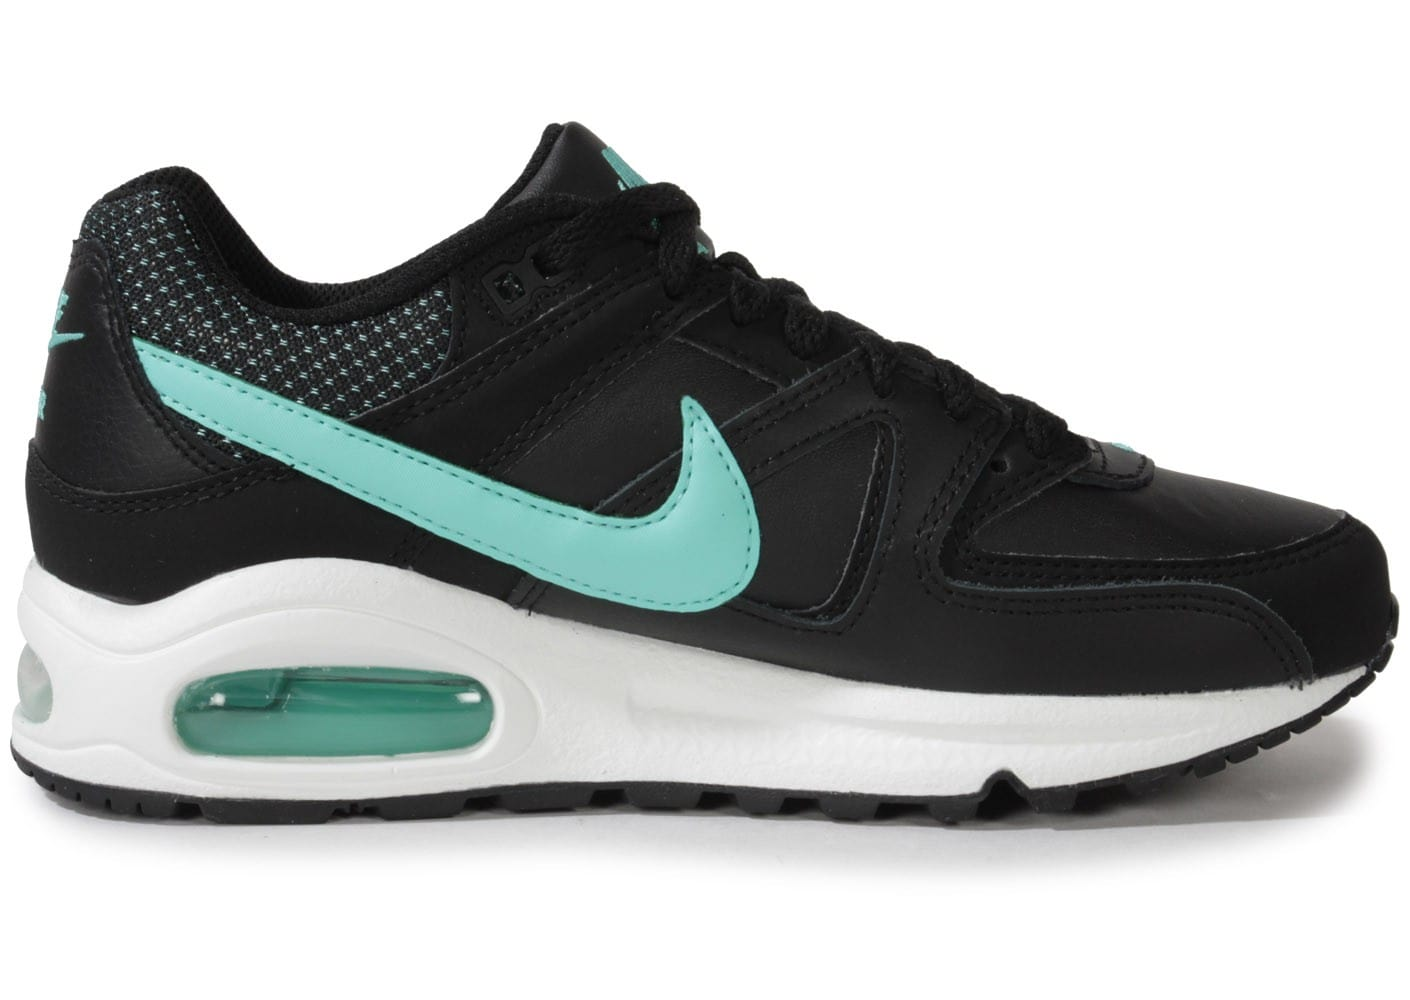 Nike Air Max Command Noir Turquoise Chaussures Chaussures